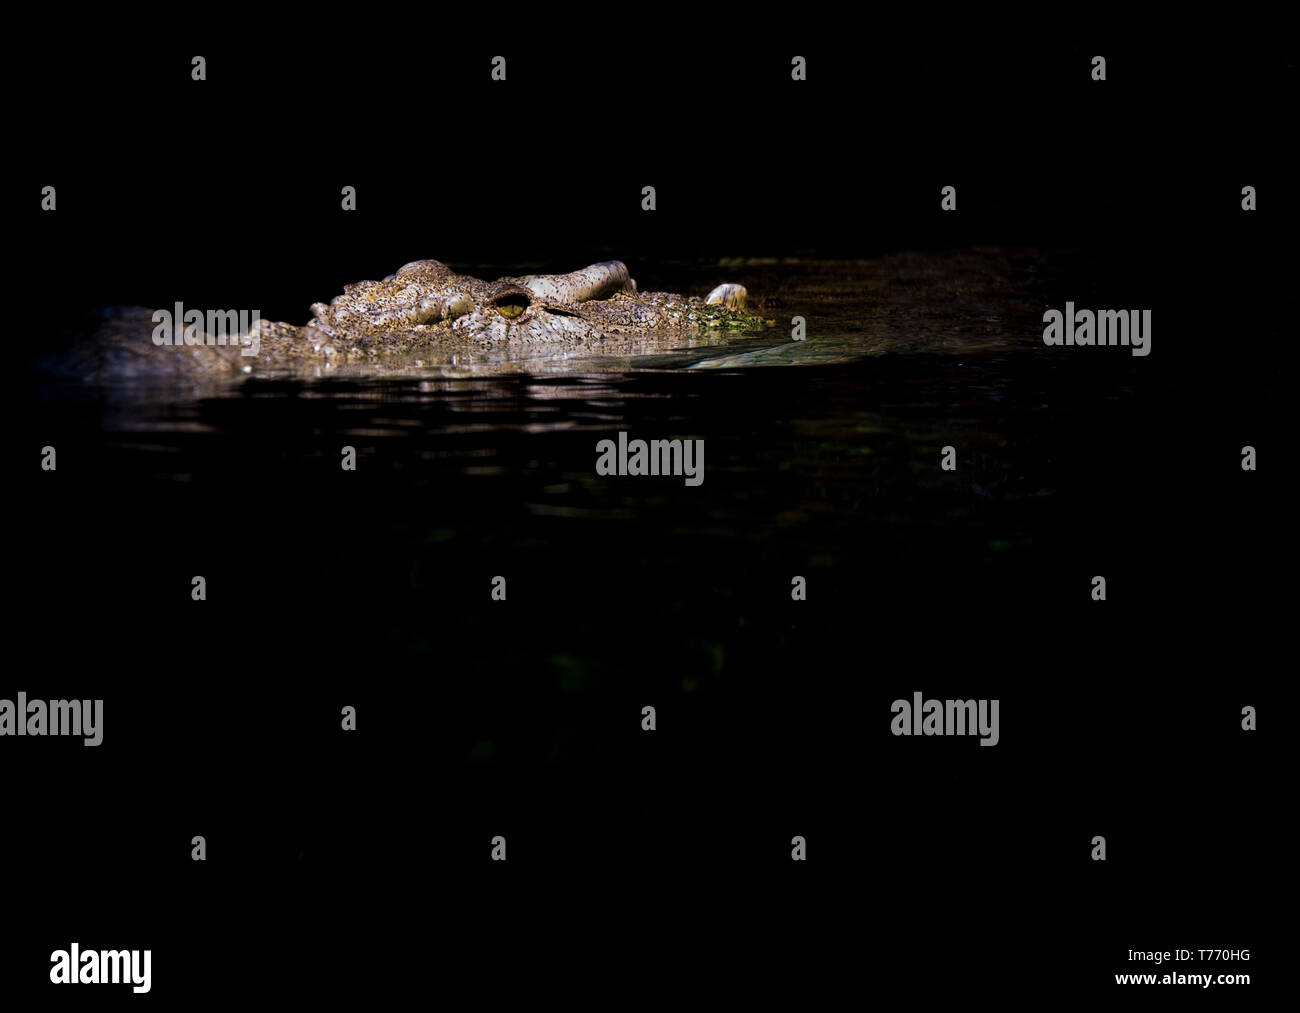 large Saltwater Crocodile waiting for prey - Stock Image